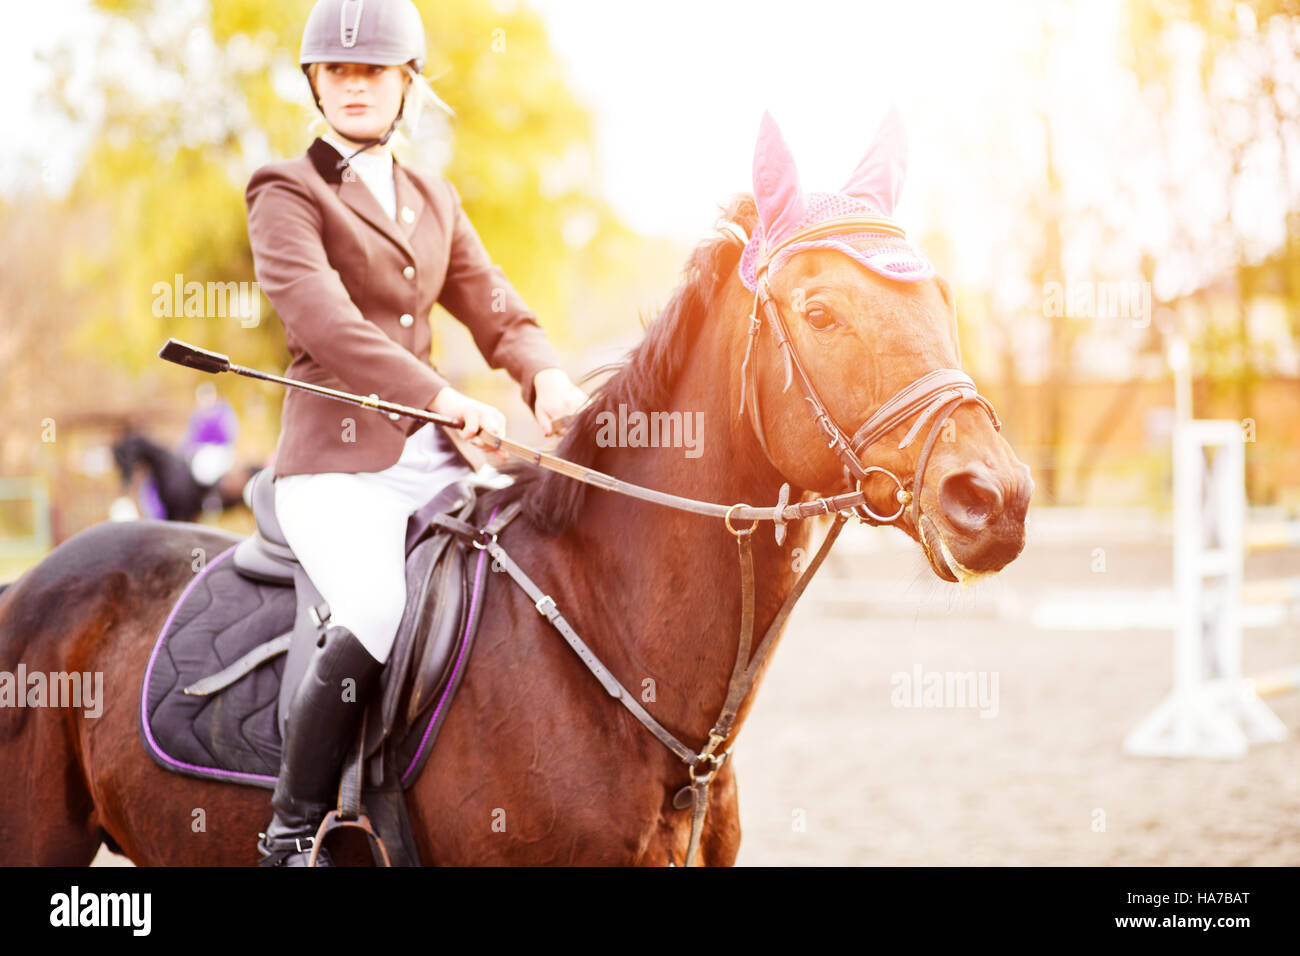 Young rider woman riding horse at the competition. Equestrian sport background - Stock Image